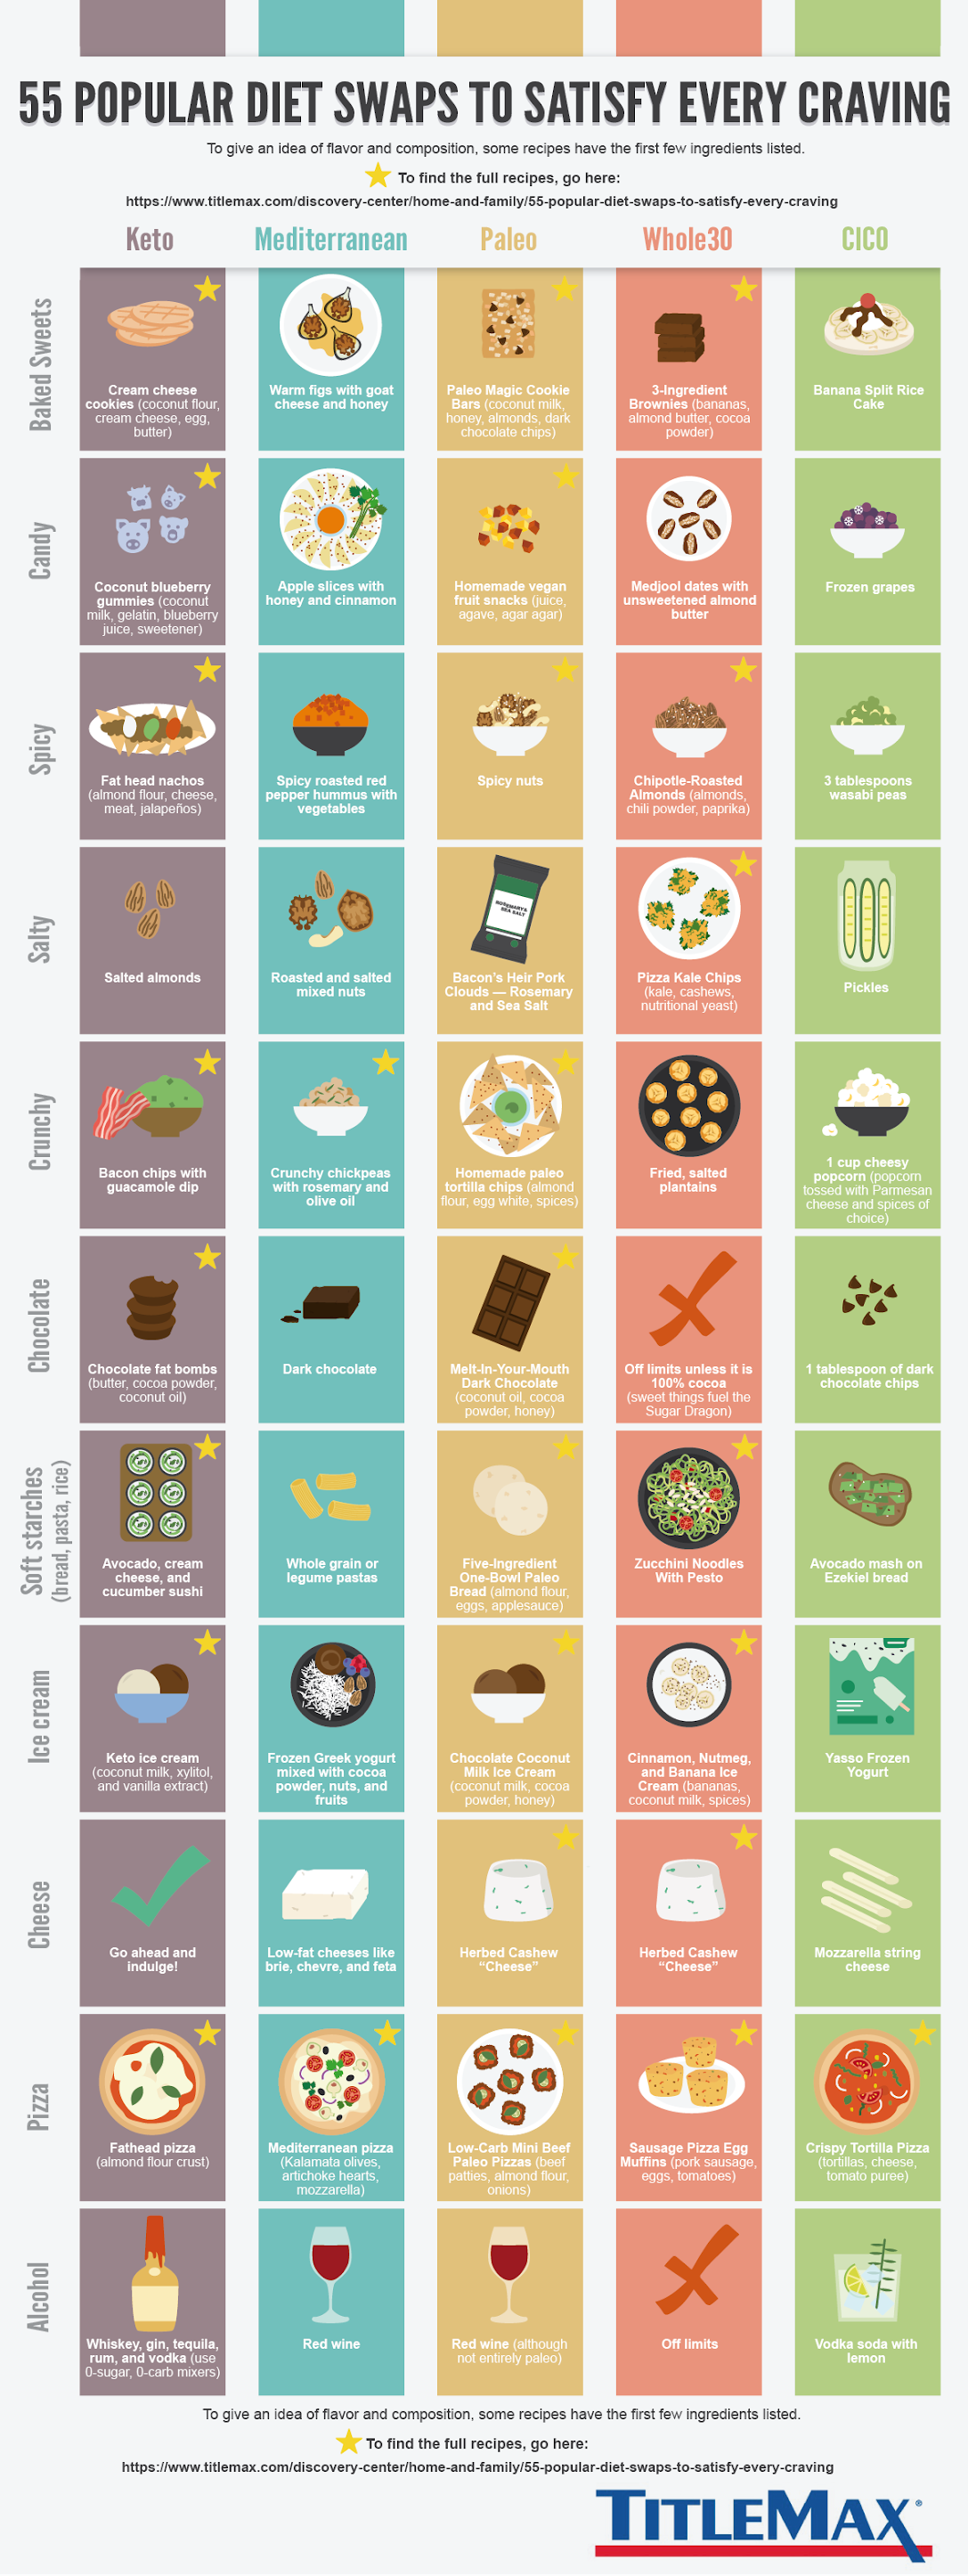 55 Popular Diet Swaps to Satisfy Every Craving #infographic